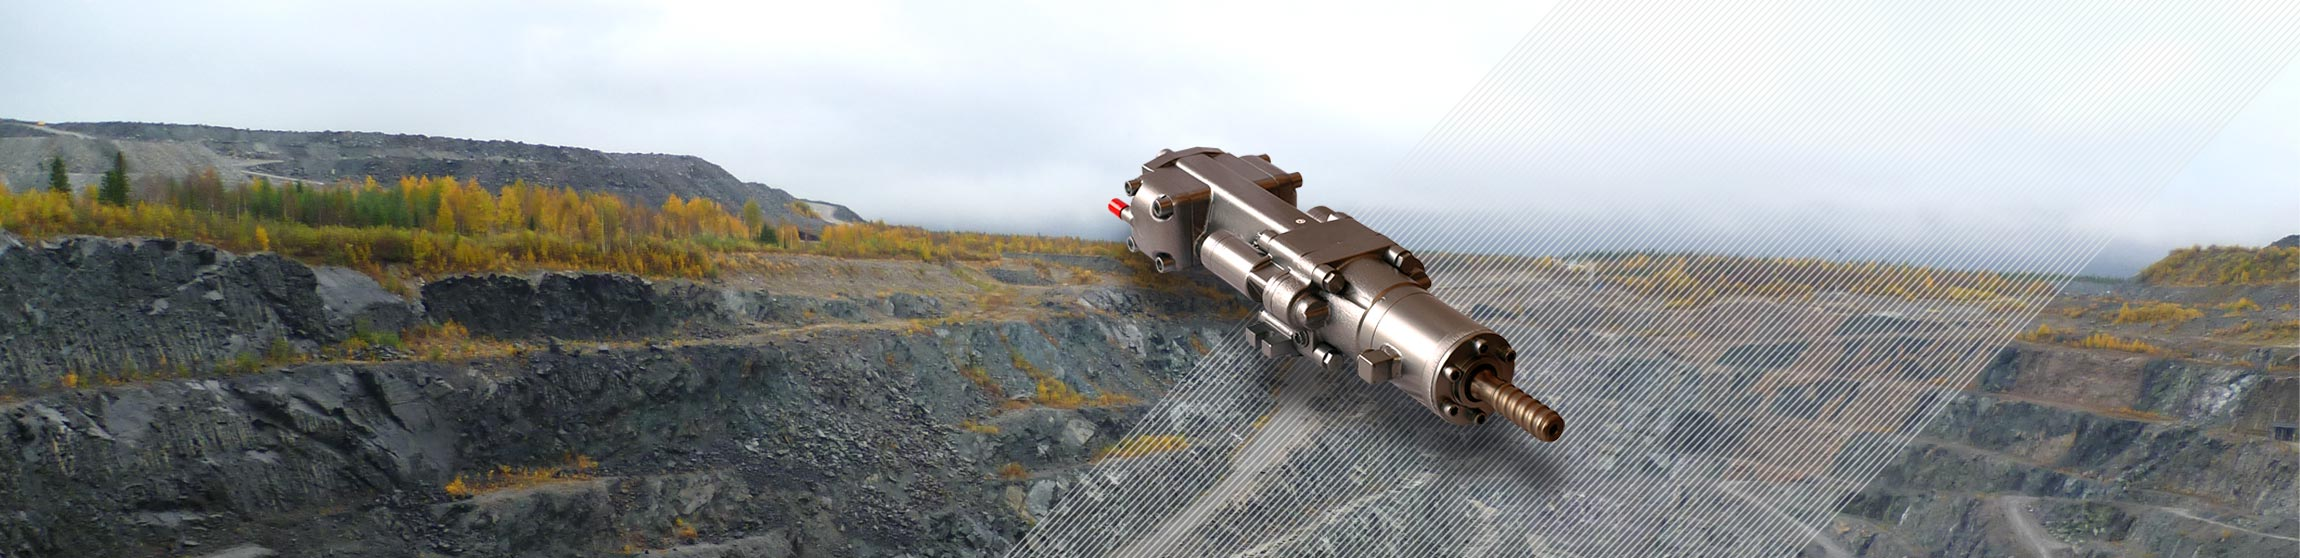 hydraulci rock drill and an open pit mine